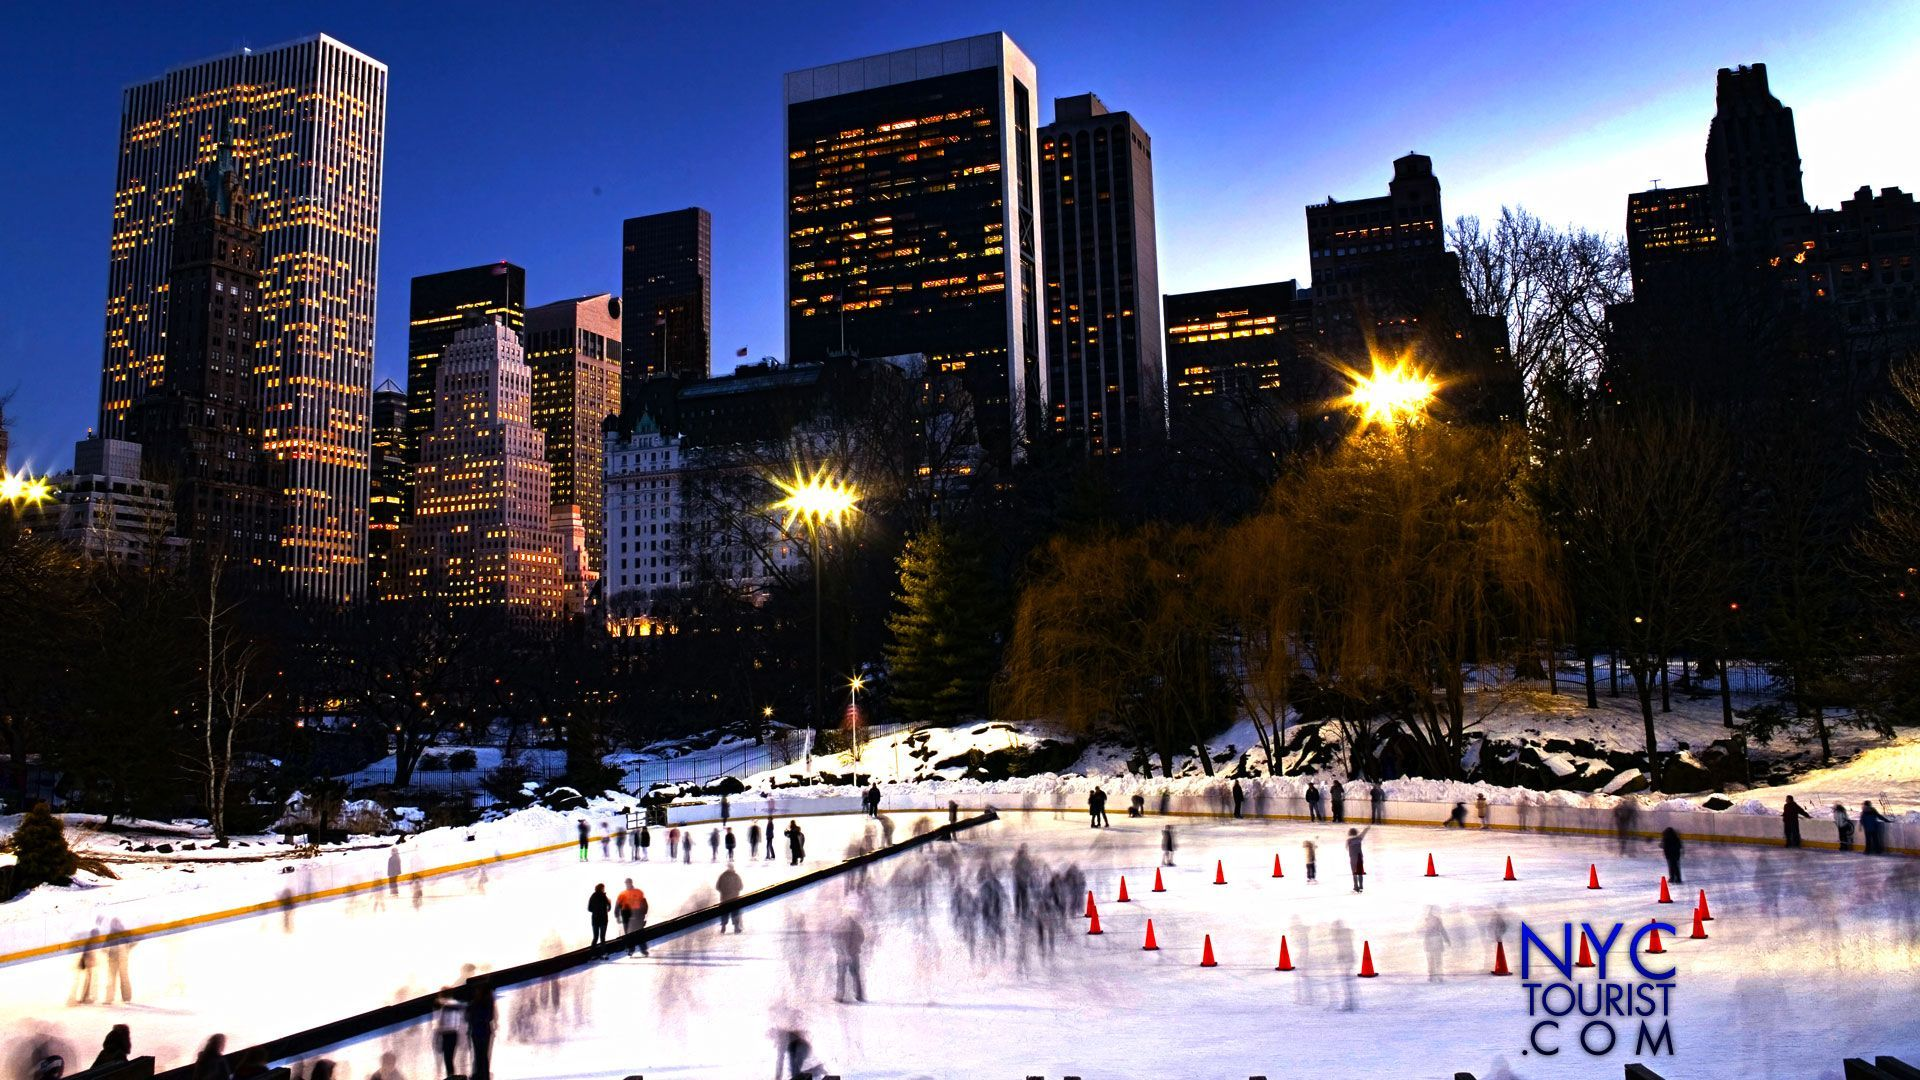 Wollman Skating Rink - New York City , HD Wallpaper & Backgrounds